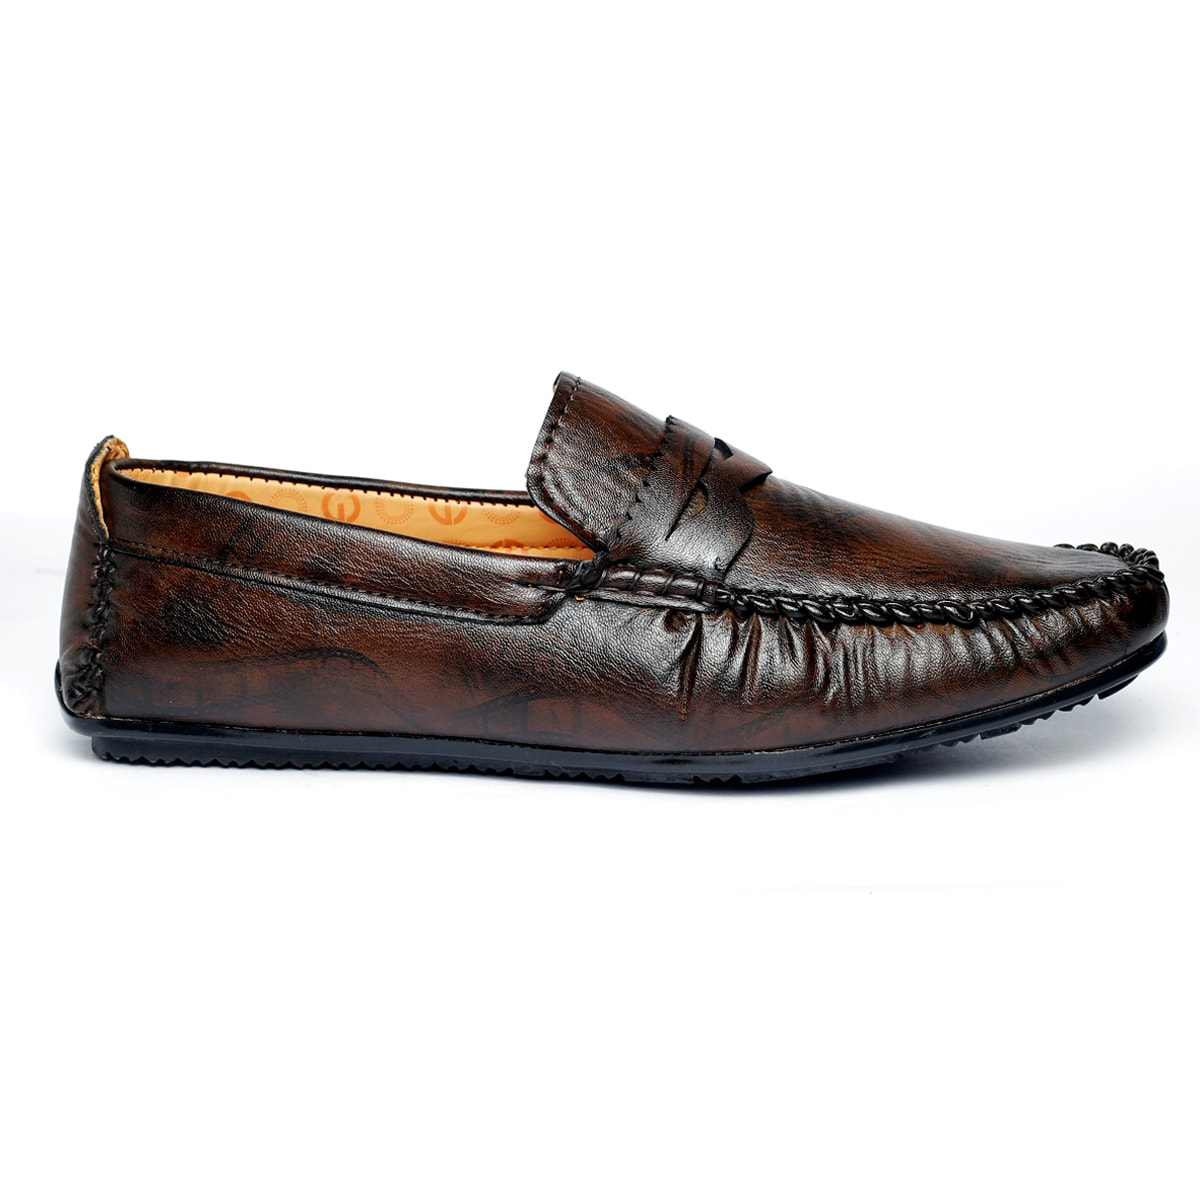 JK PORT COMFORTABLE, FASHIONABLE AND TRENDY LOAFERS JKPLF058BRN (BROWN,6-10,8 PAIR)